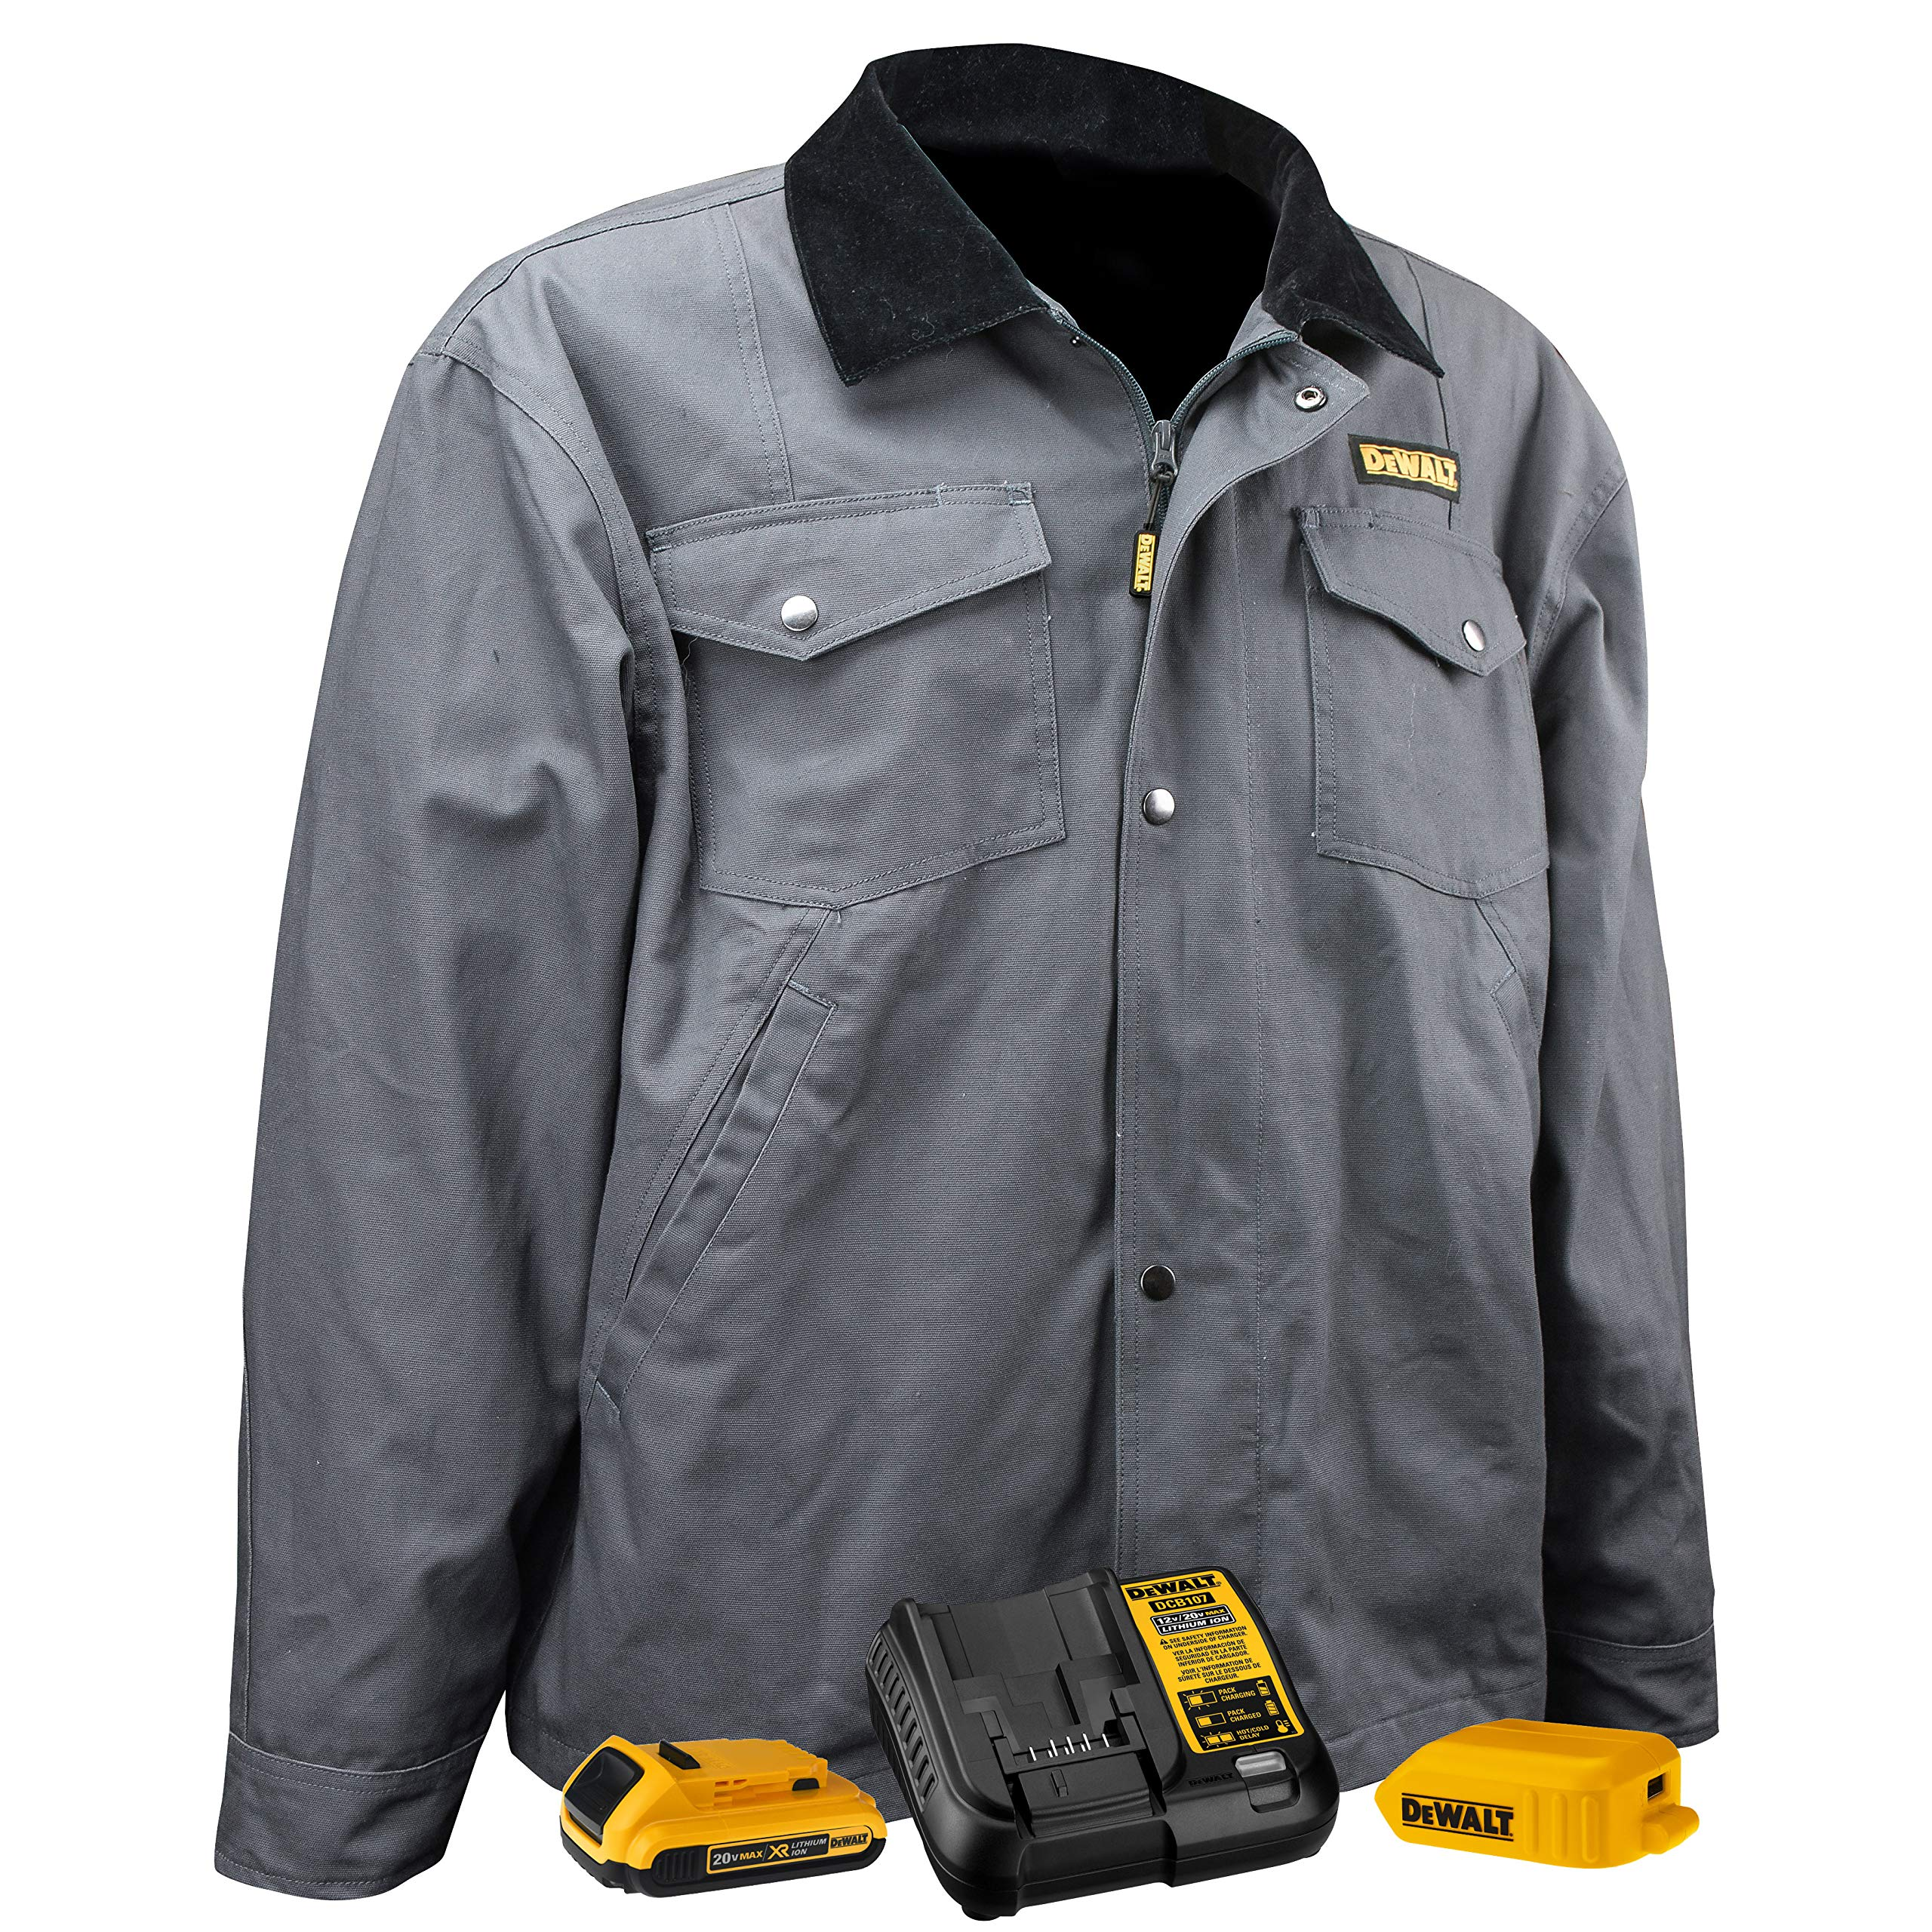 DEWALT DCHJ083 Heated Barn Coat Kit with 2.0Ah Battery and Charger, XL by DEWALT